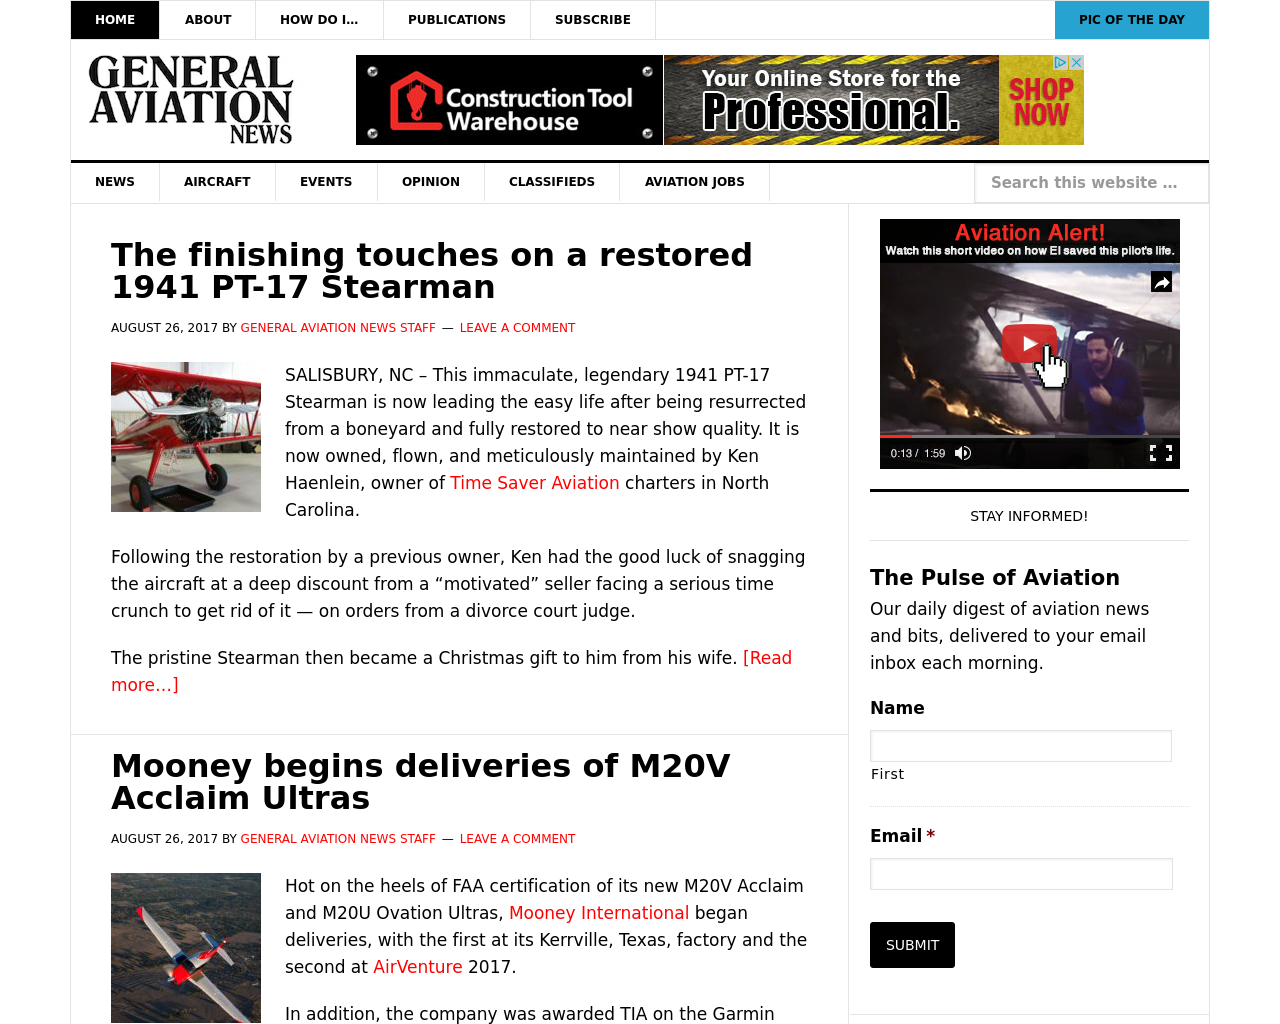 General-Aviation-News-Advertising-Reviews-Pricing